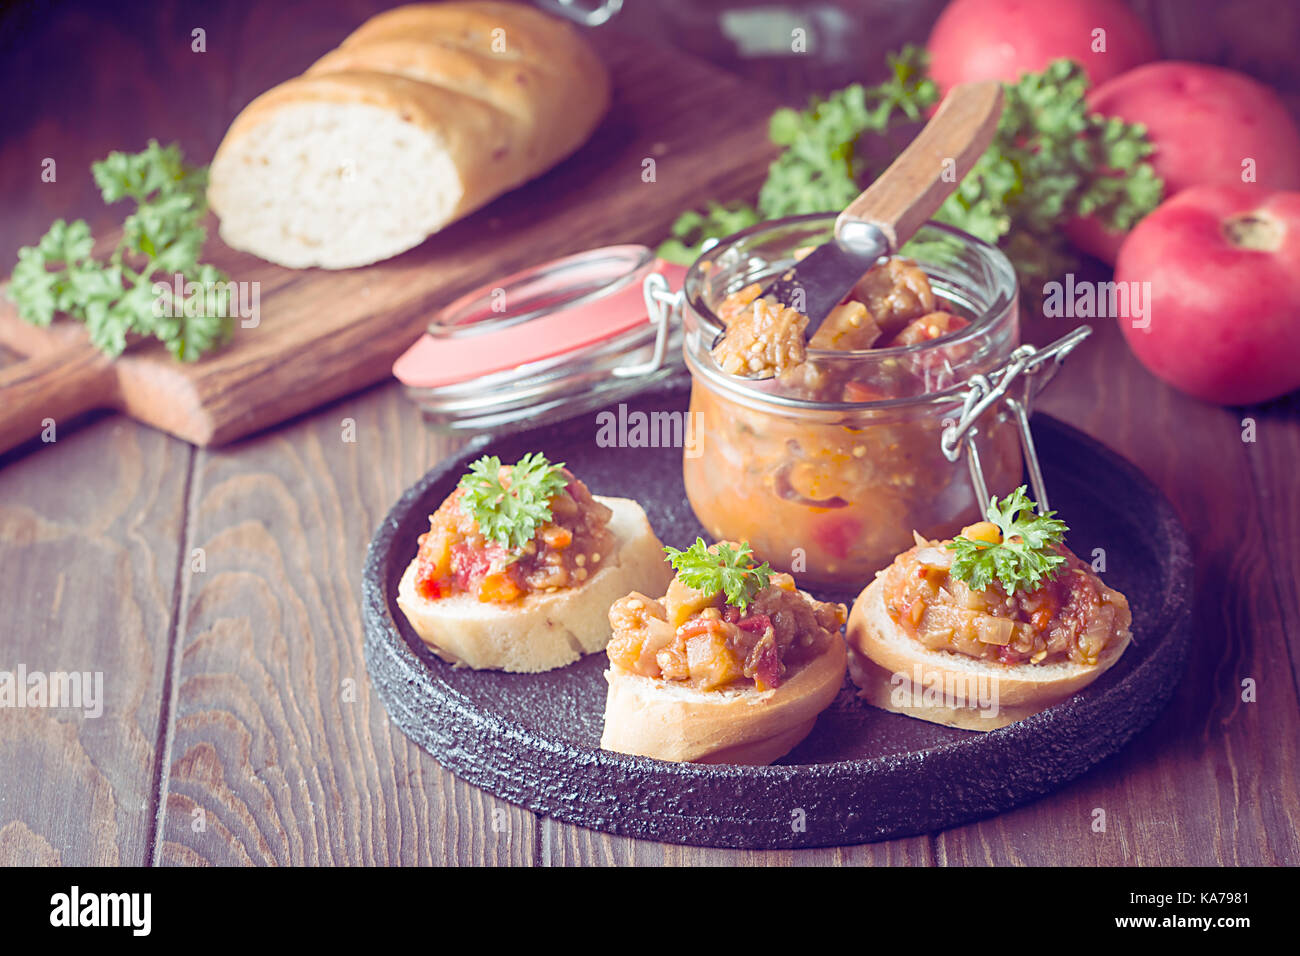 Bread toasts with eggplant caviar. - Stock Image